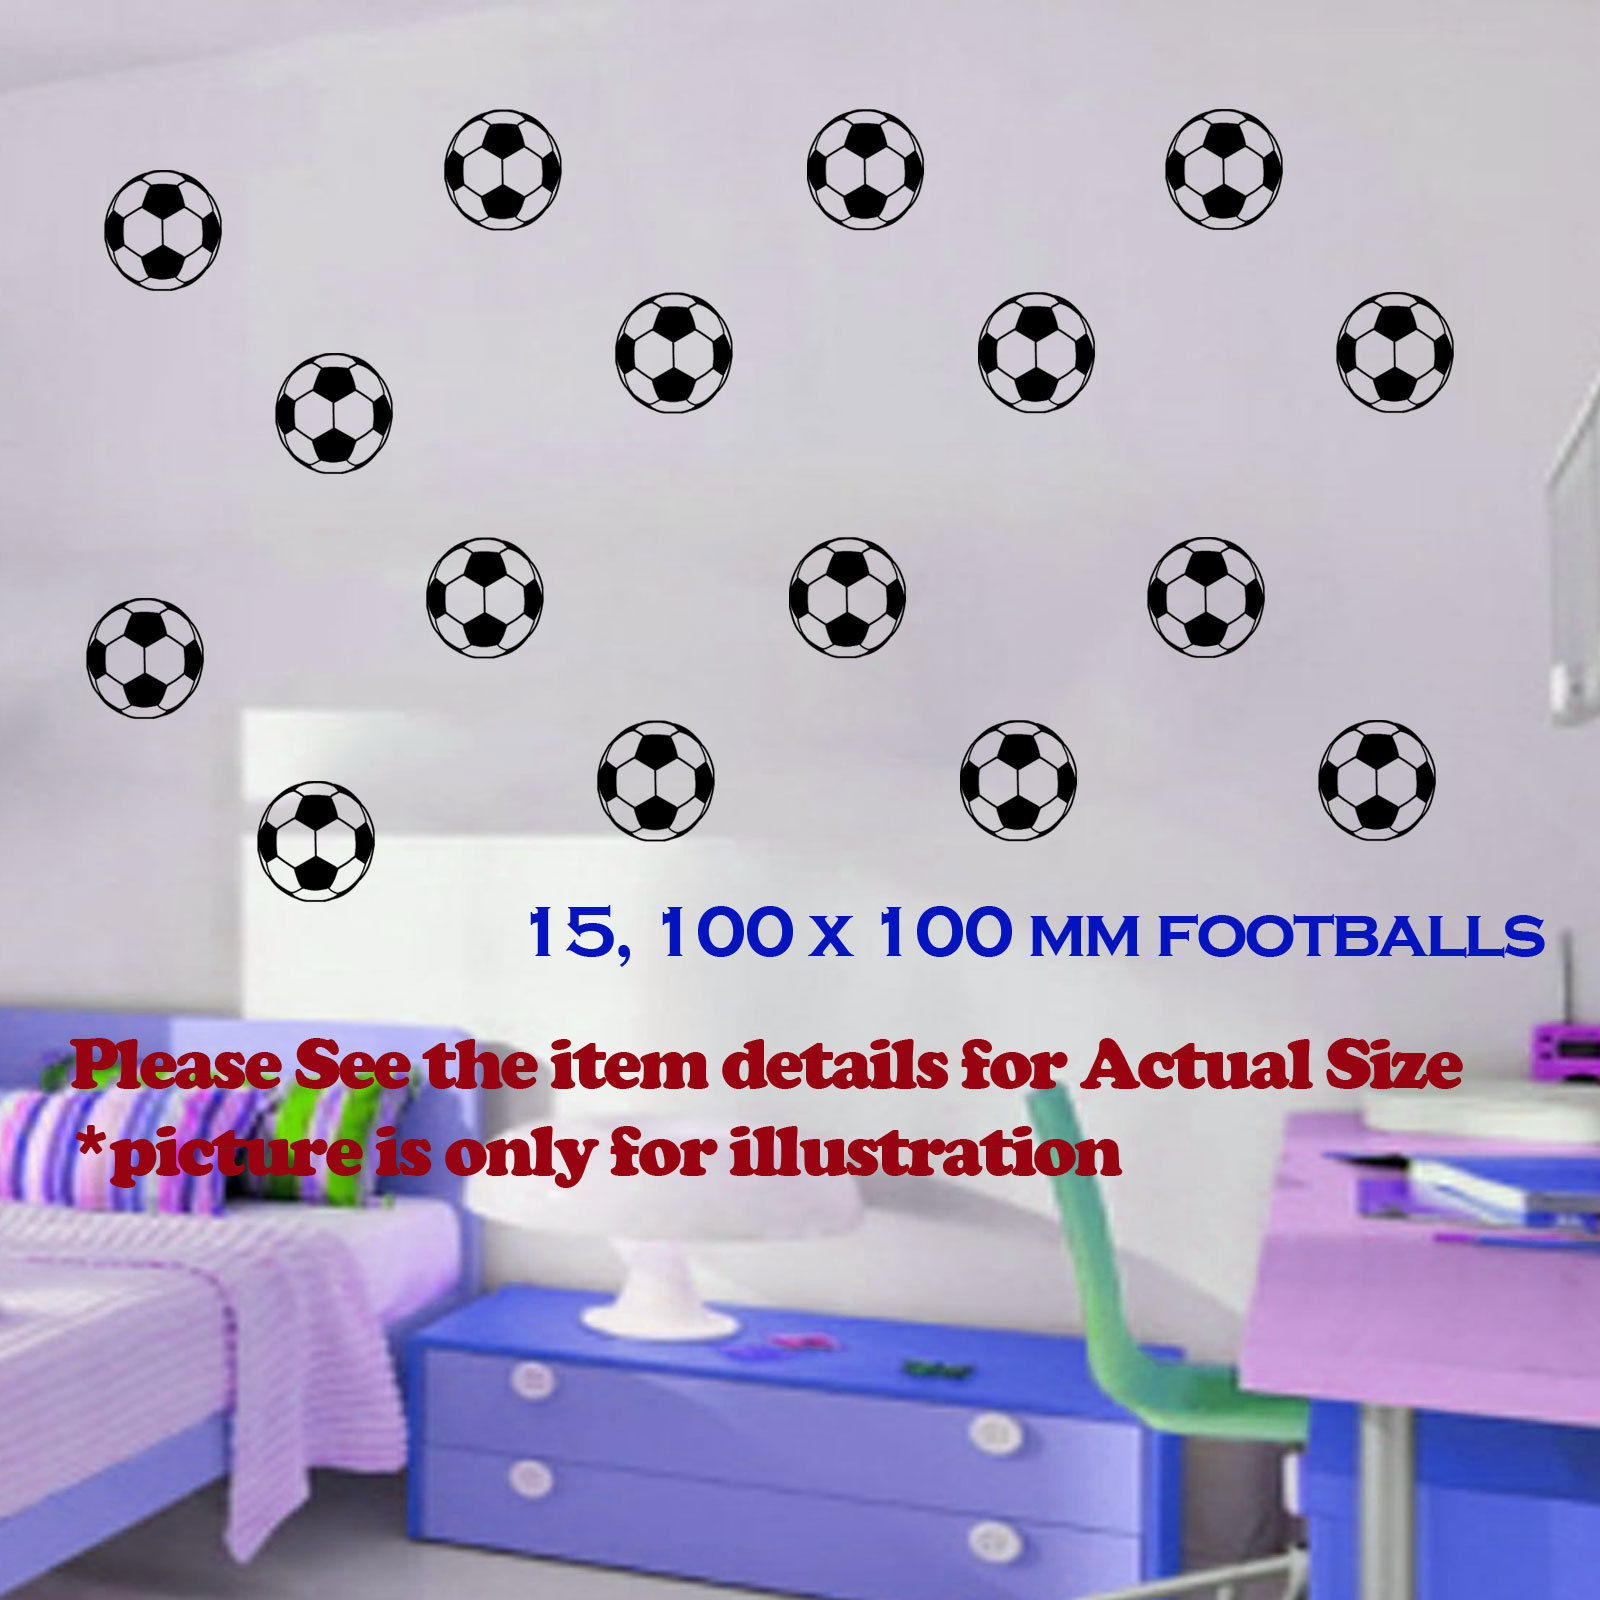 Liverpool fc wall stickers choice image home wall decoration ideas d0105 15 football soccer 100x100mm vinyl removable wall sticker d0105 15 football soccer 100x100mm vinyl removable amipublicfo Images